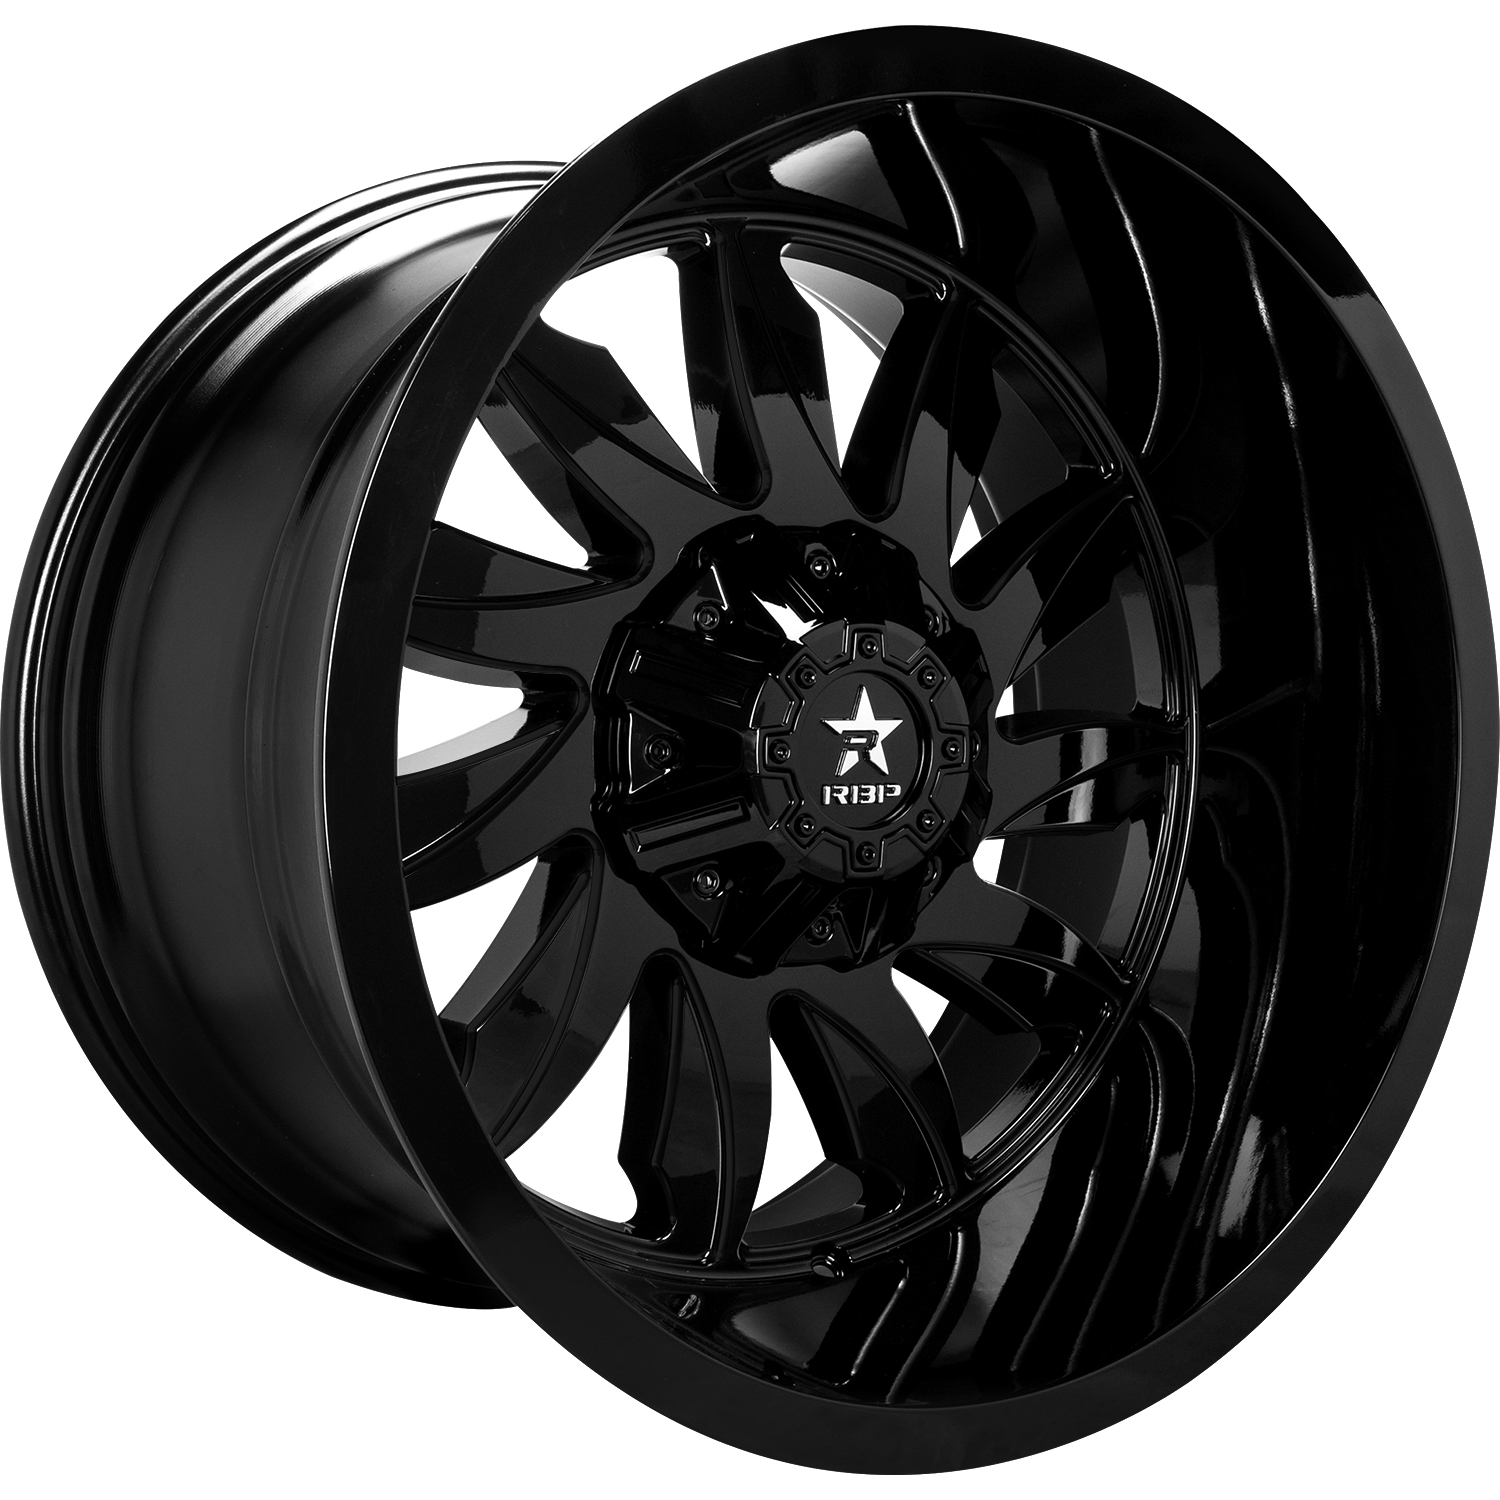 RBP 74R 20x10 0mm | 74R 2010 70 00FB